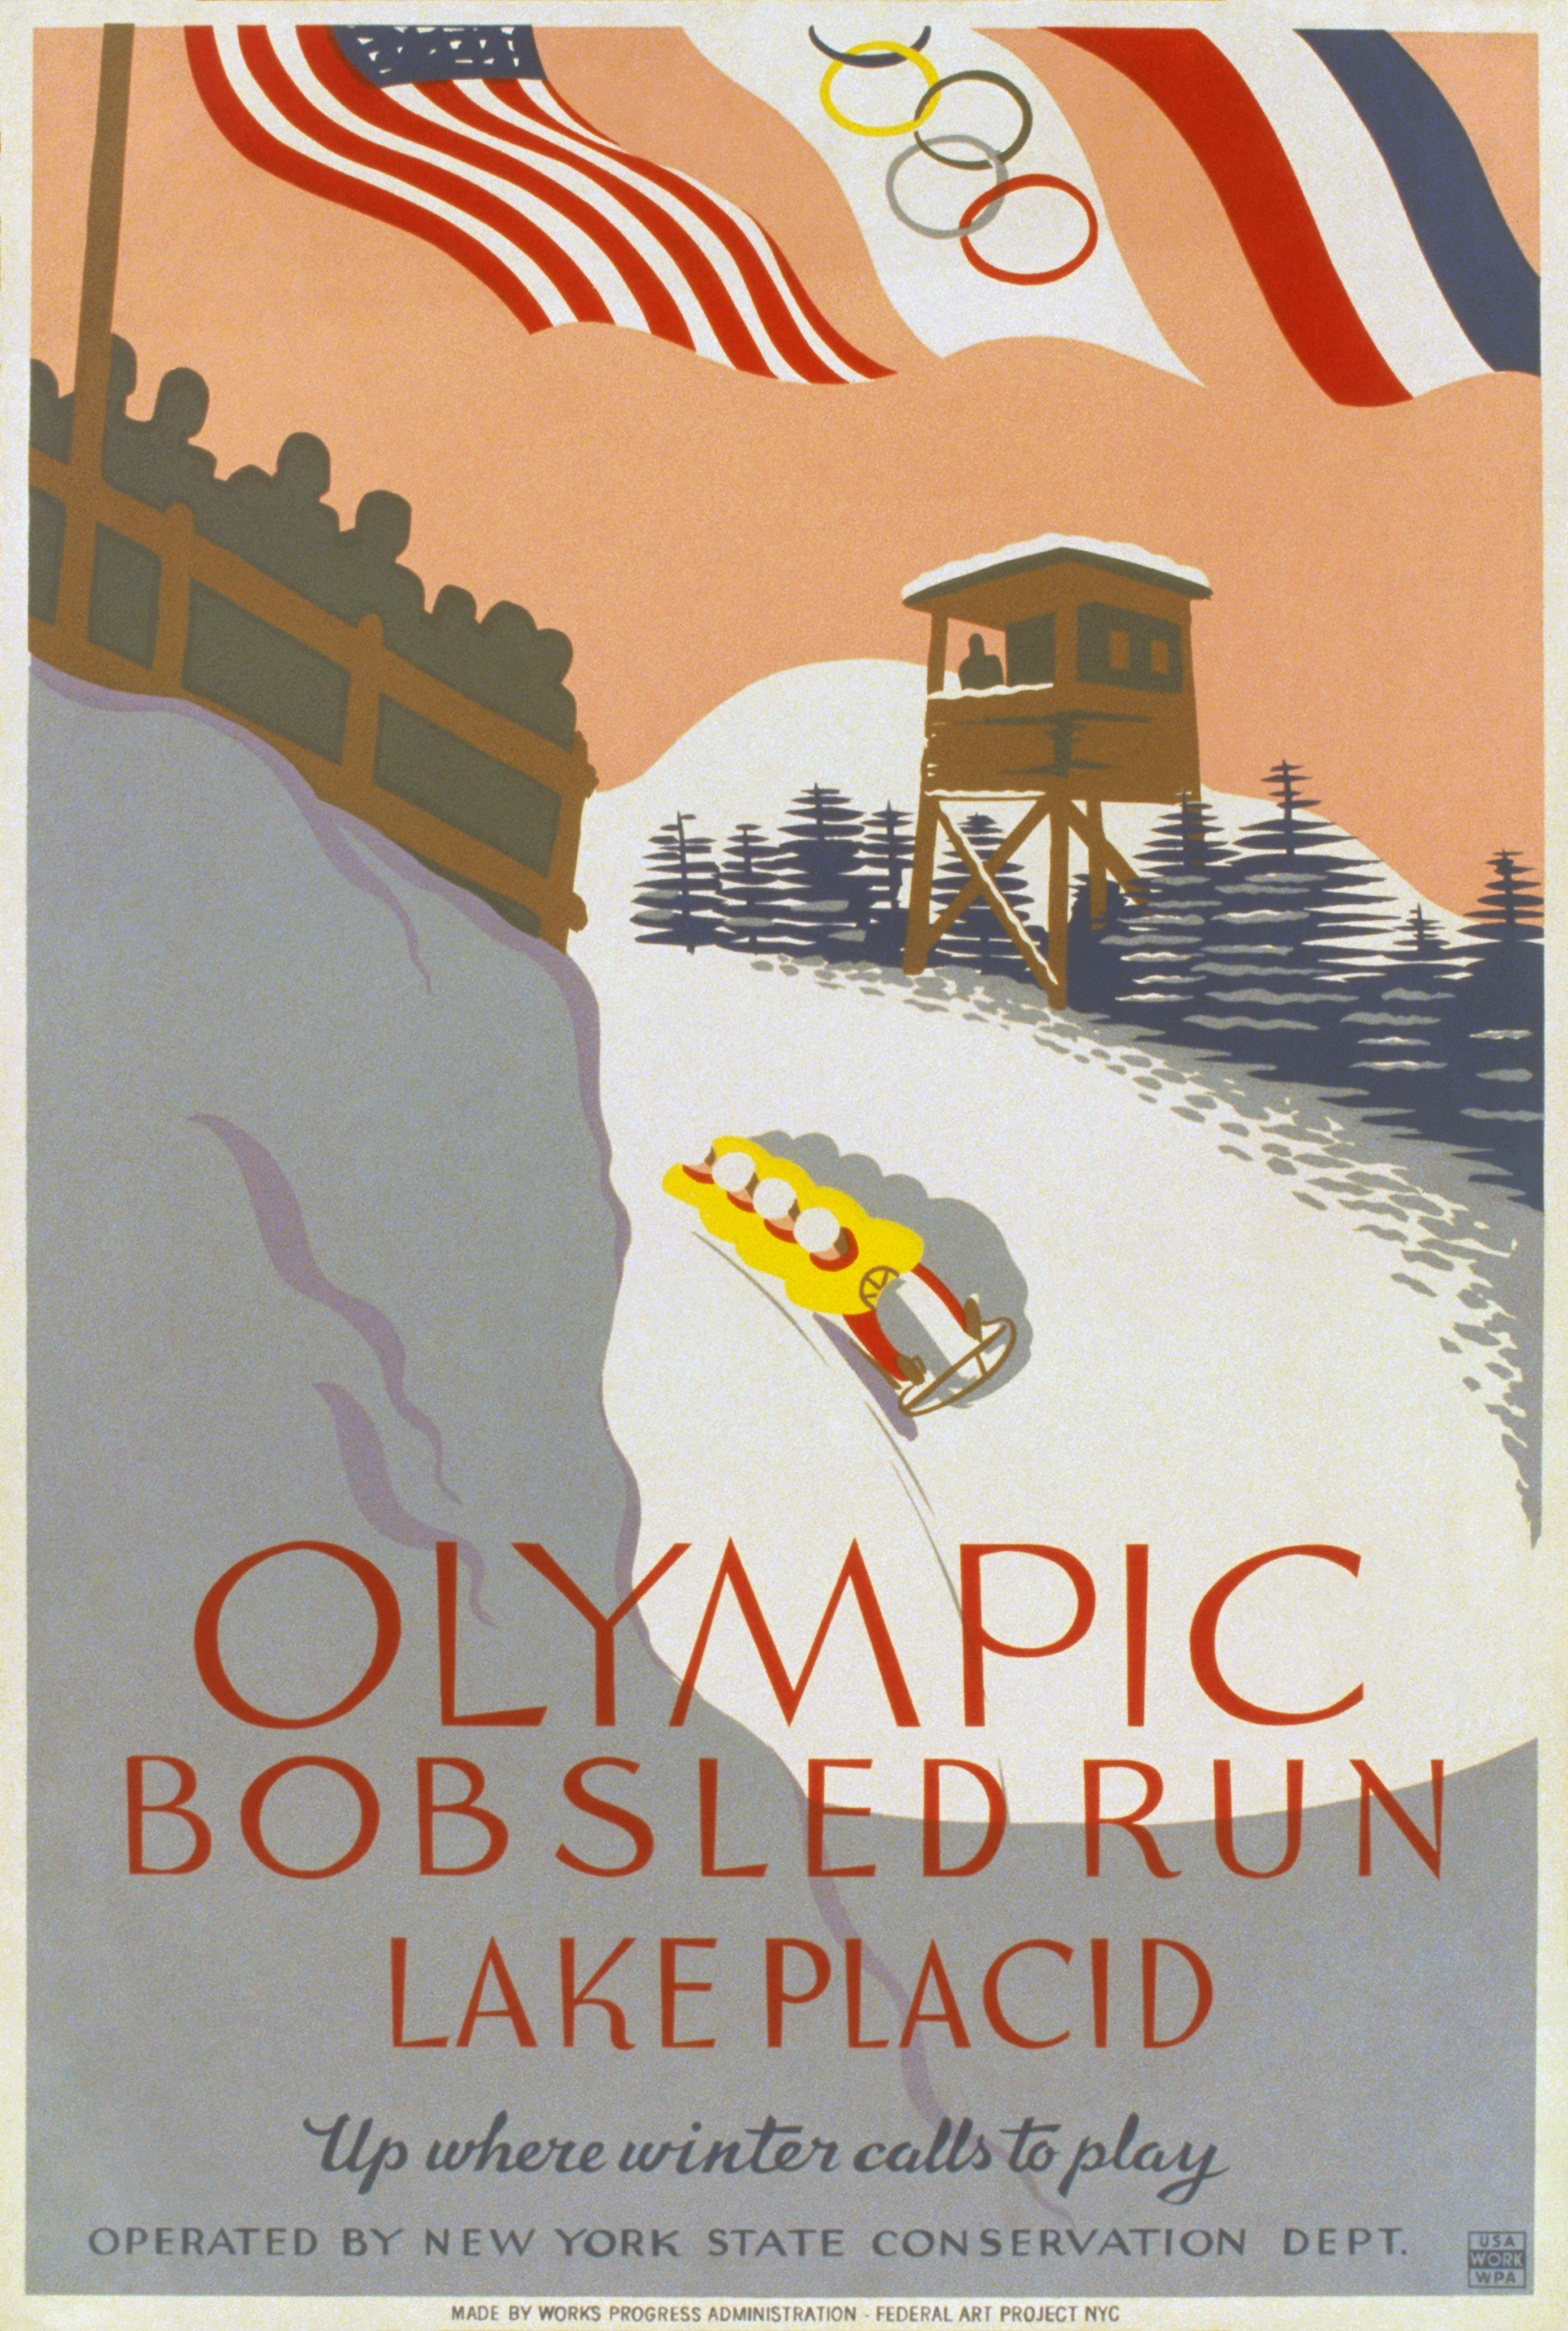 Poster design wikipedia - File Olympic Bobsled Run Lake Placid2 Jpg